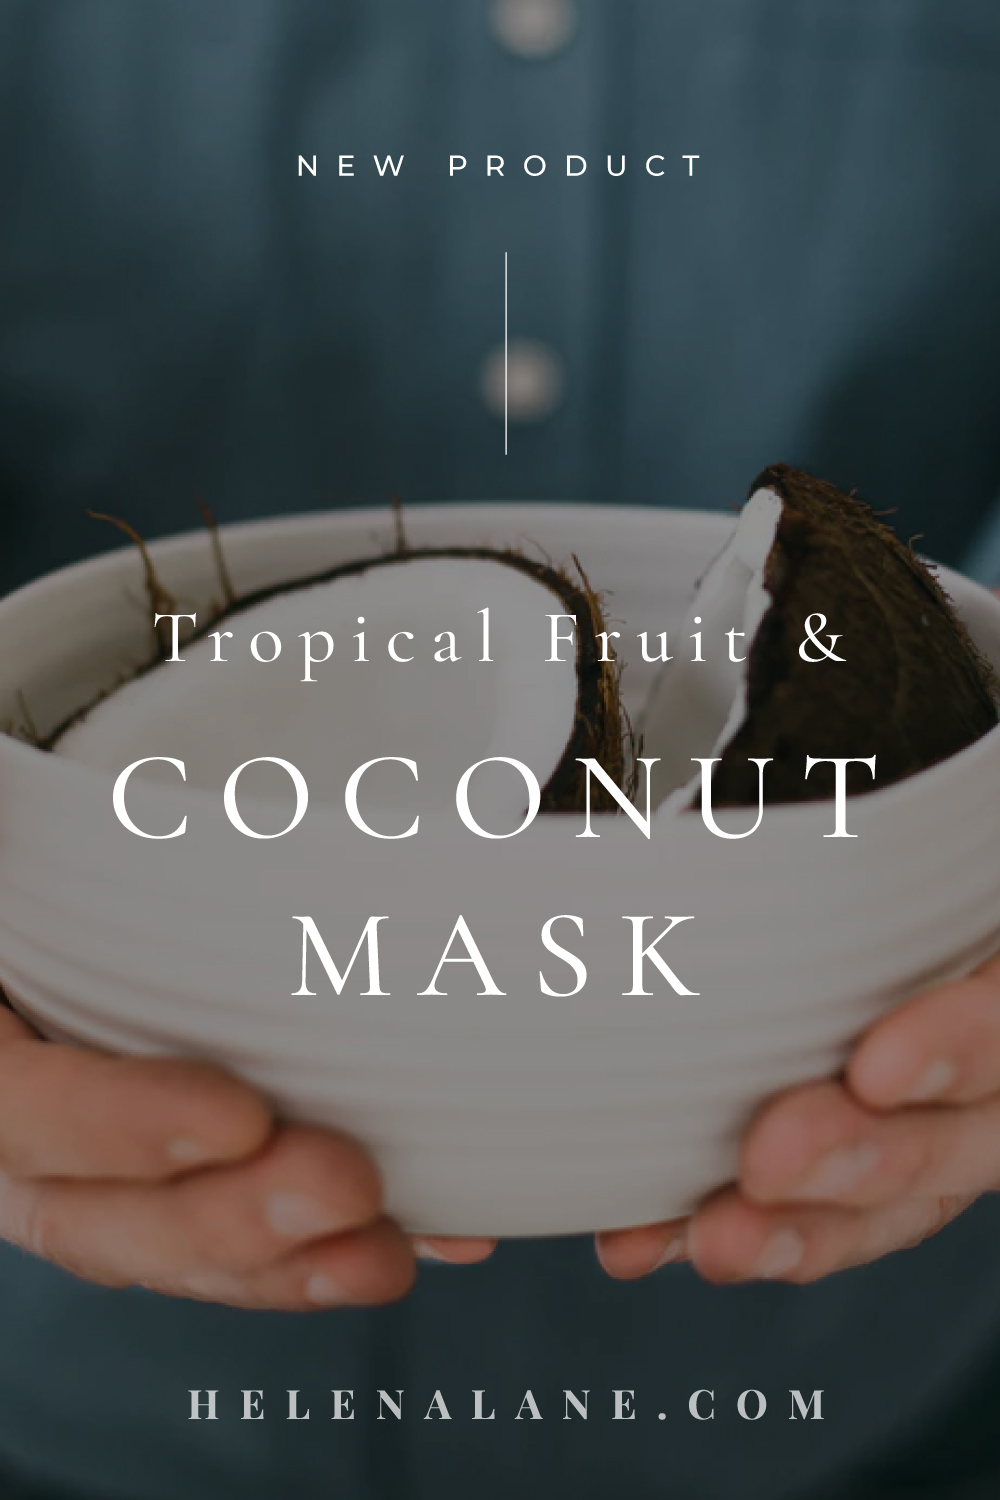 Tropical Fruit Coconut Mask by Helena Lane Organic Skincare